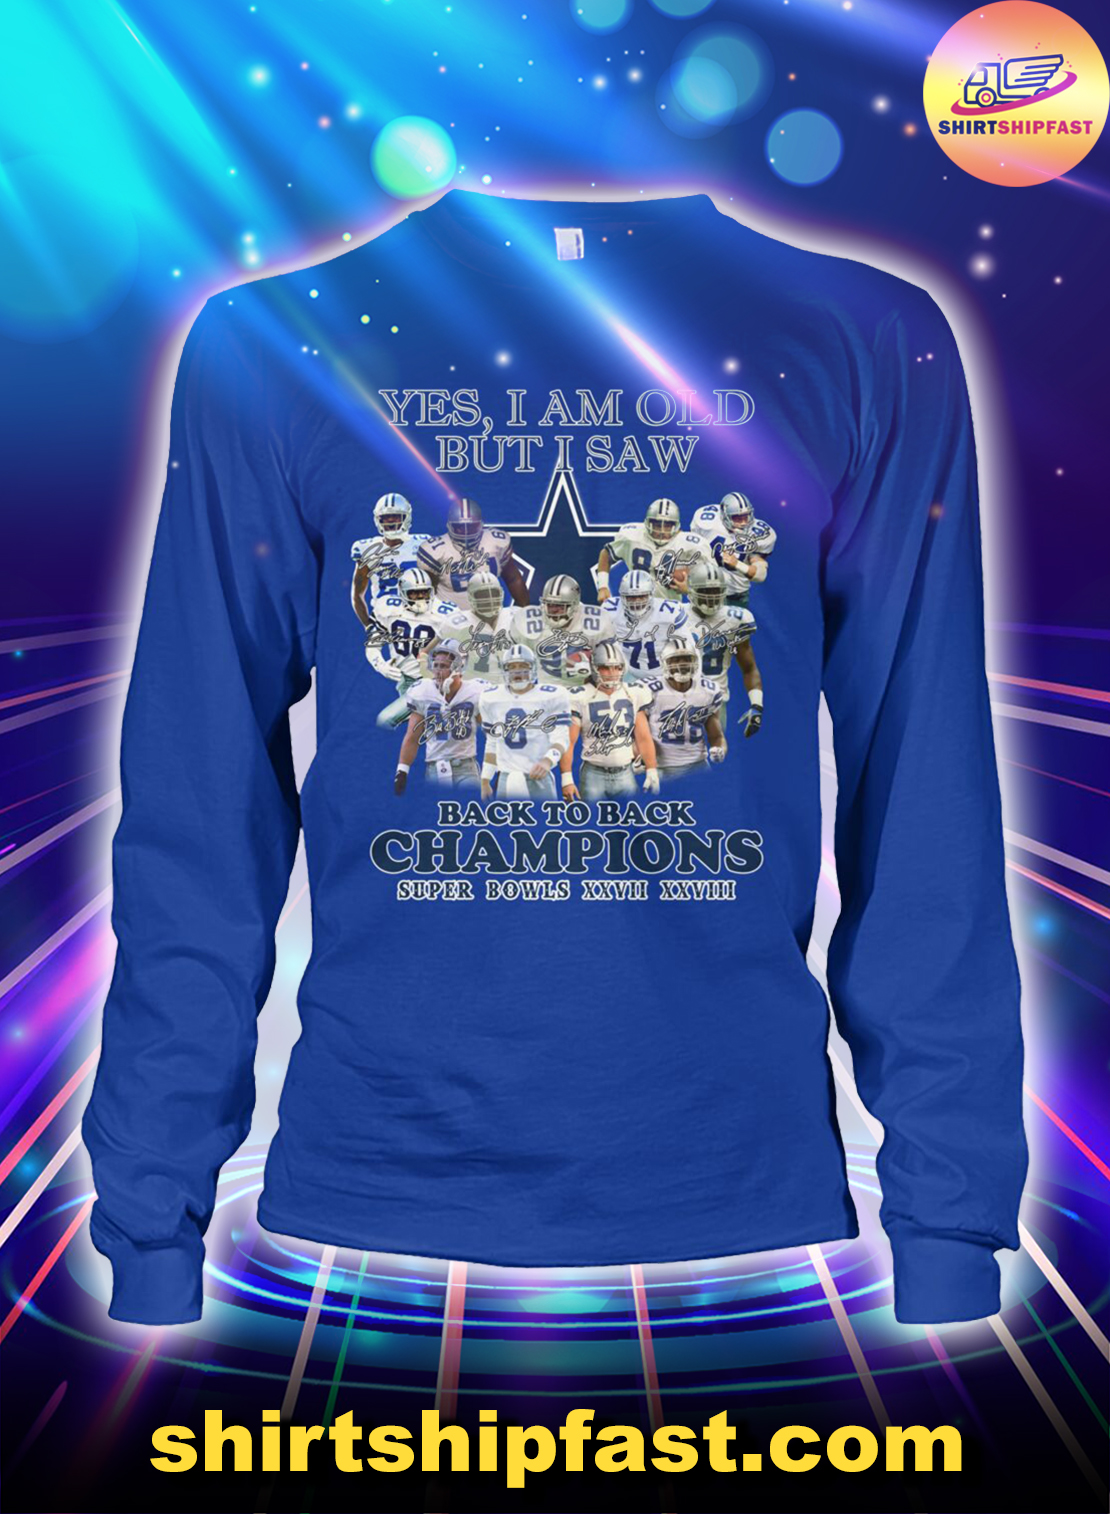 Dallas Cowboys Yes I am old but I saw back to back champions super bowls XXVII XXVIII long sleeve tee